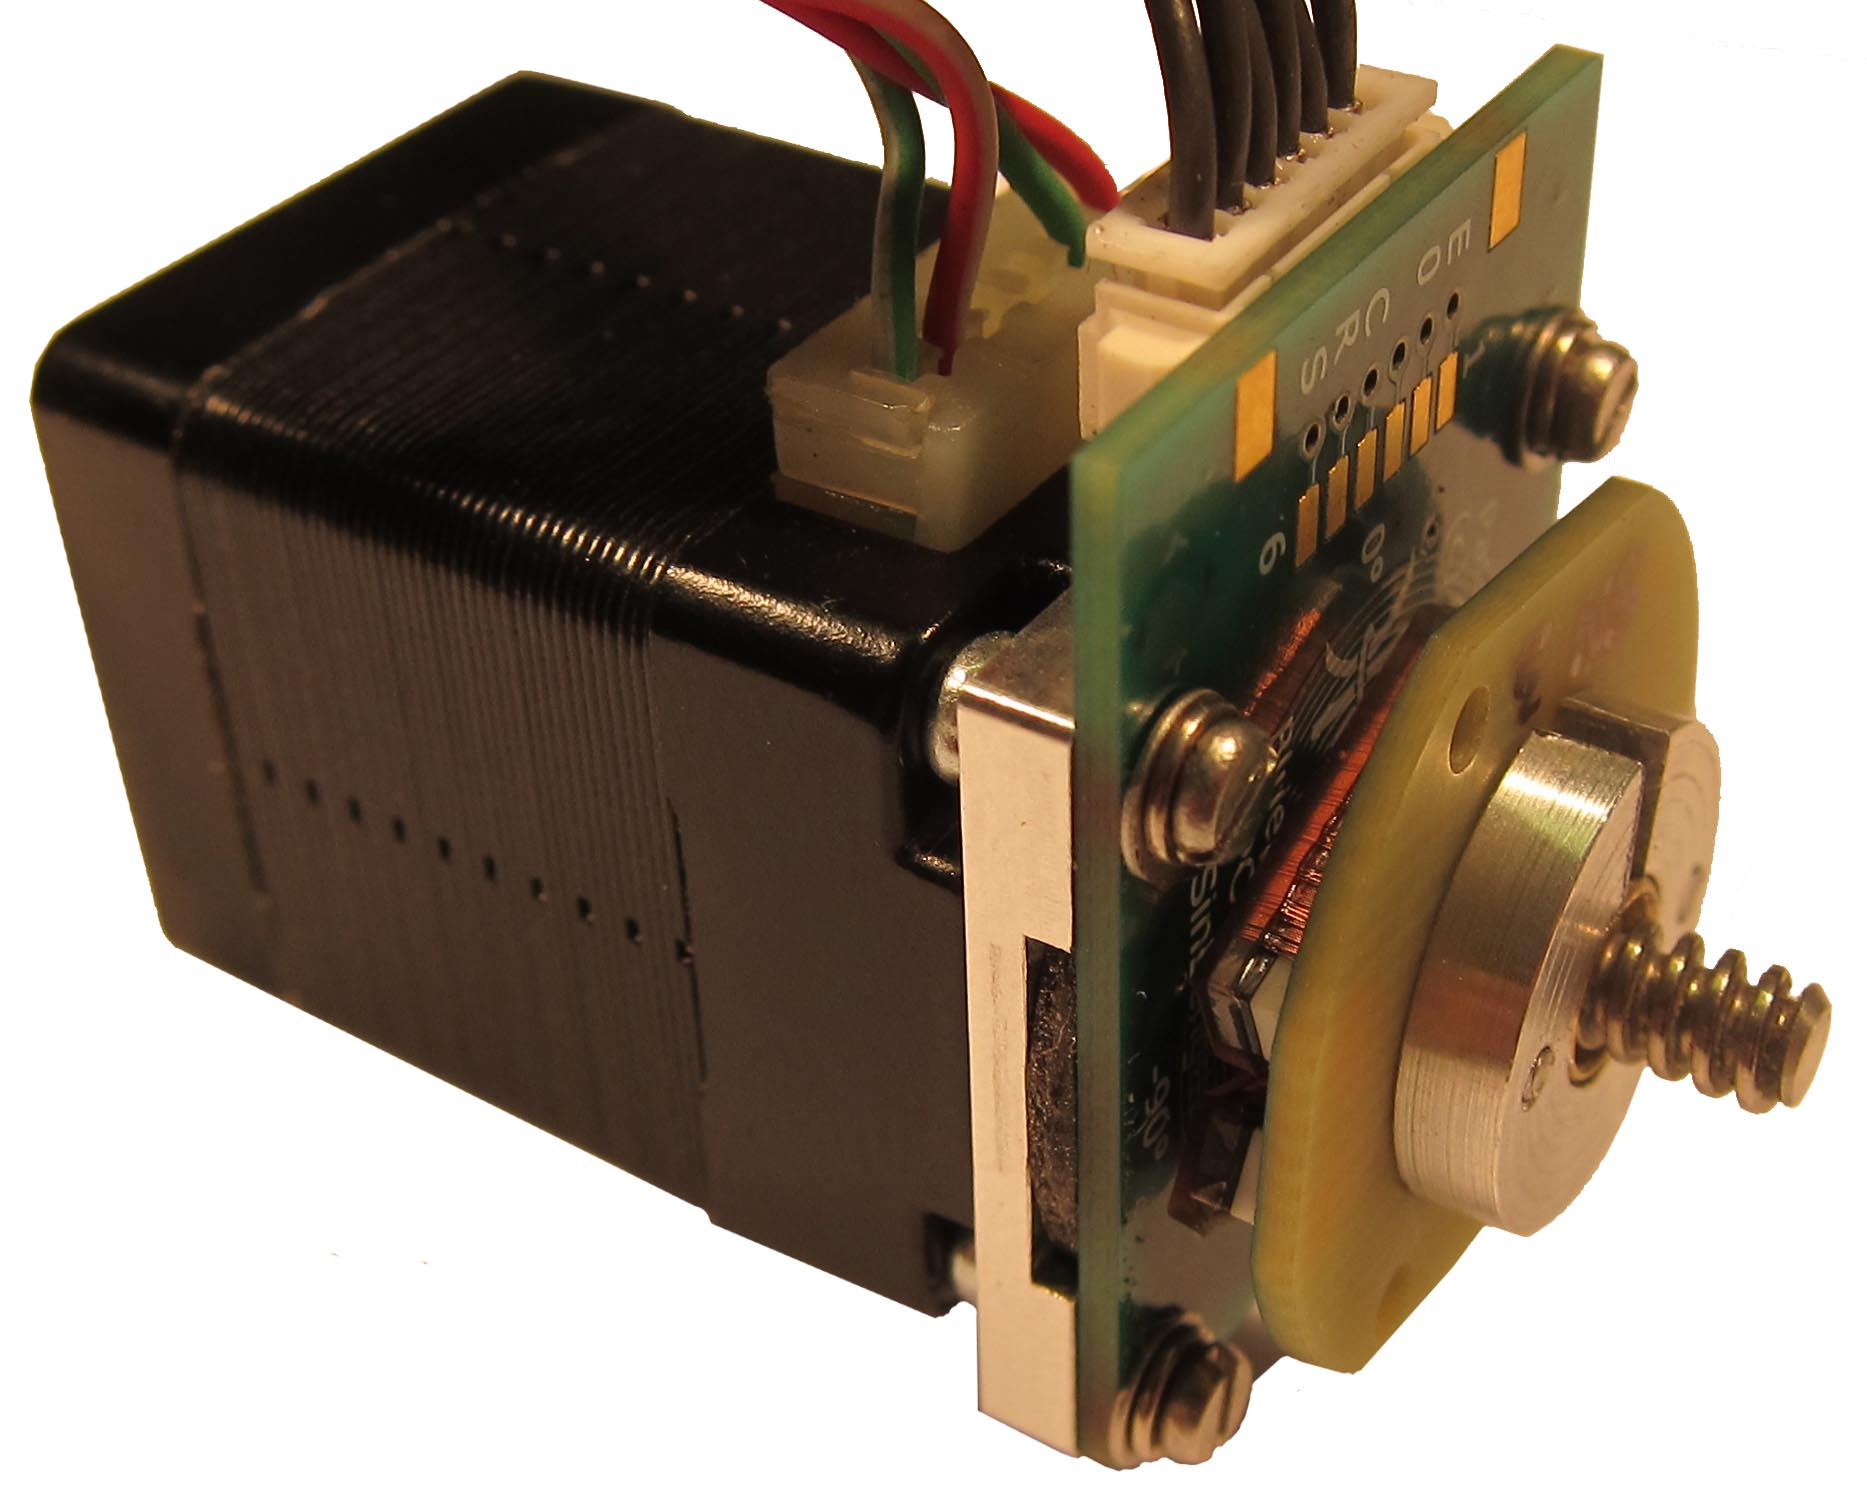 NEMA8 non-captive linear stepper motor with 21mm throguh hole rotary screened sensor and target